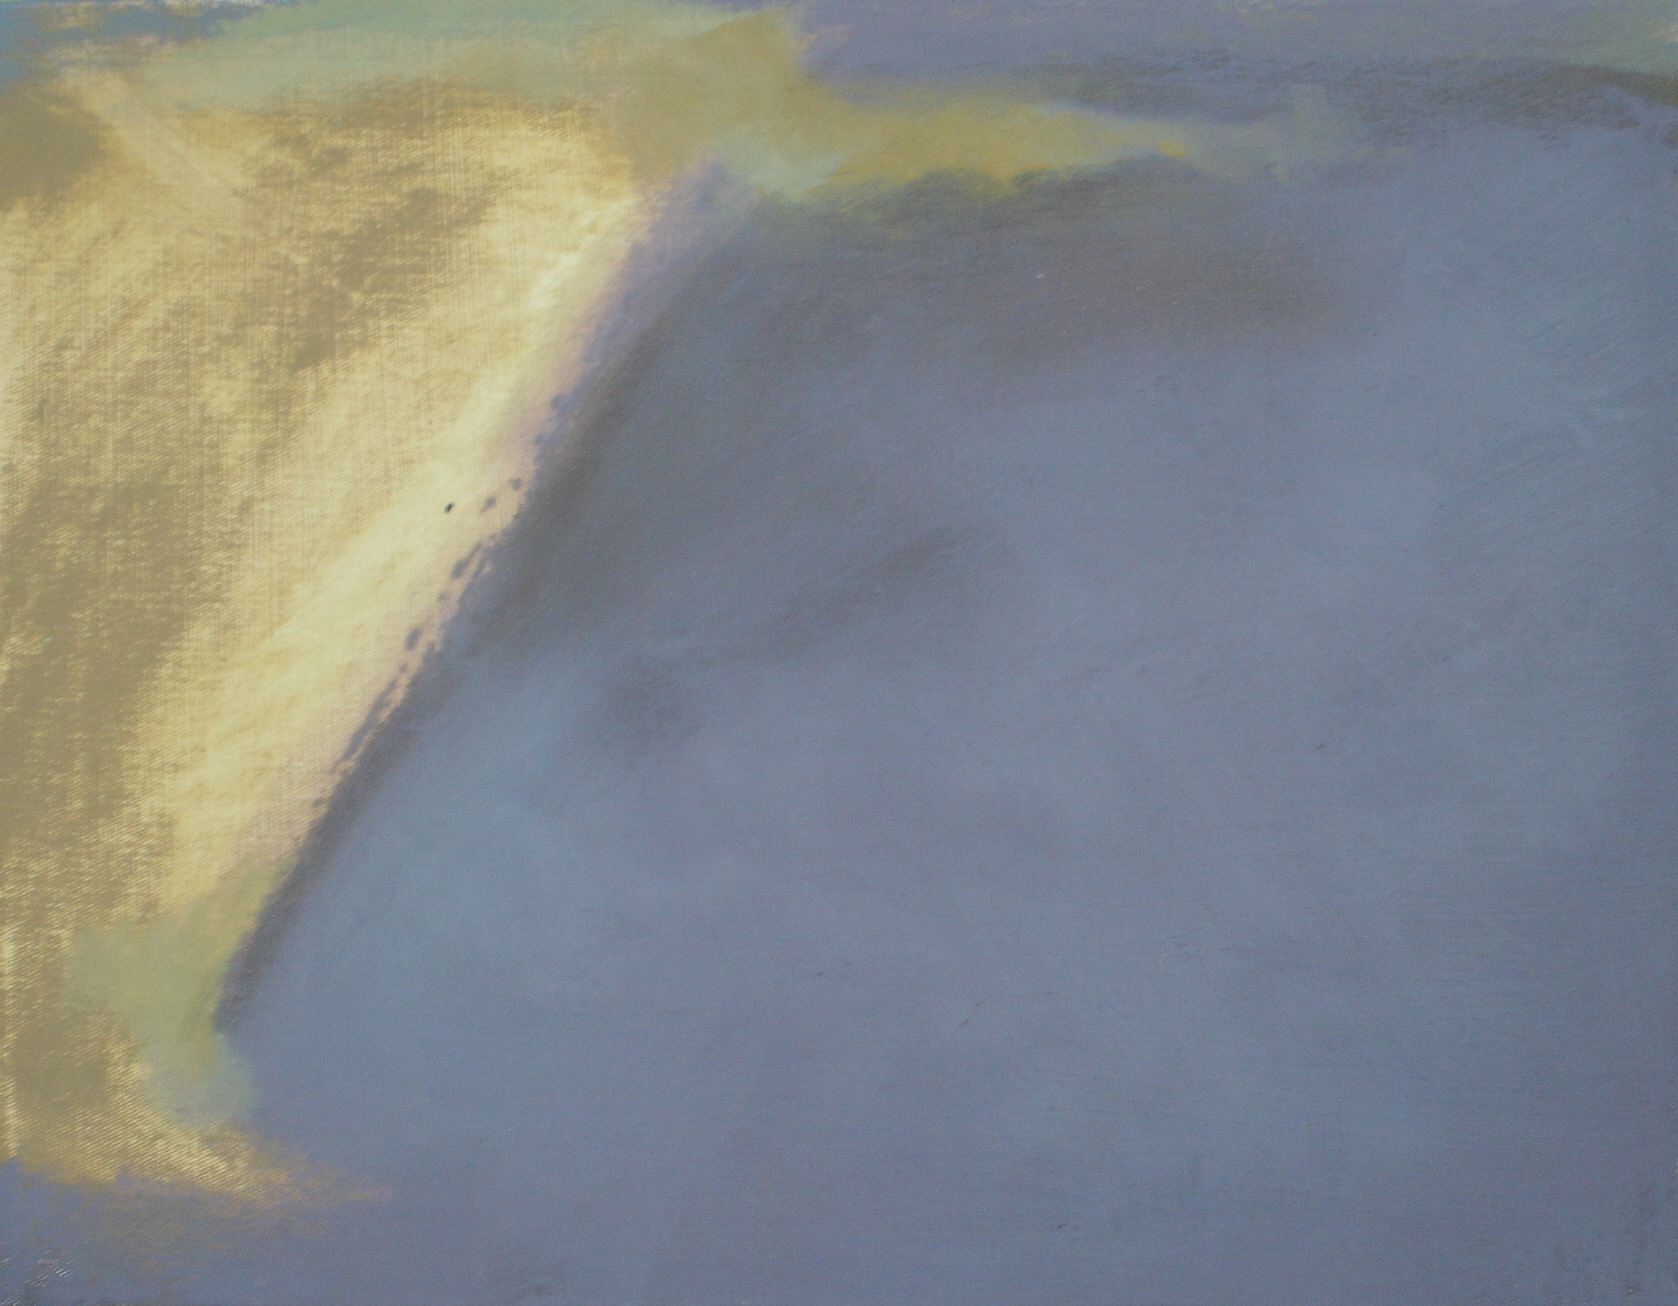 The Line Which Divides, Footprint, Tramyard Gallery, oil on canvas, 2008